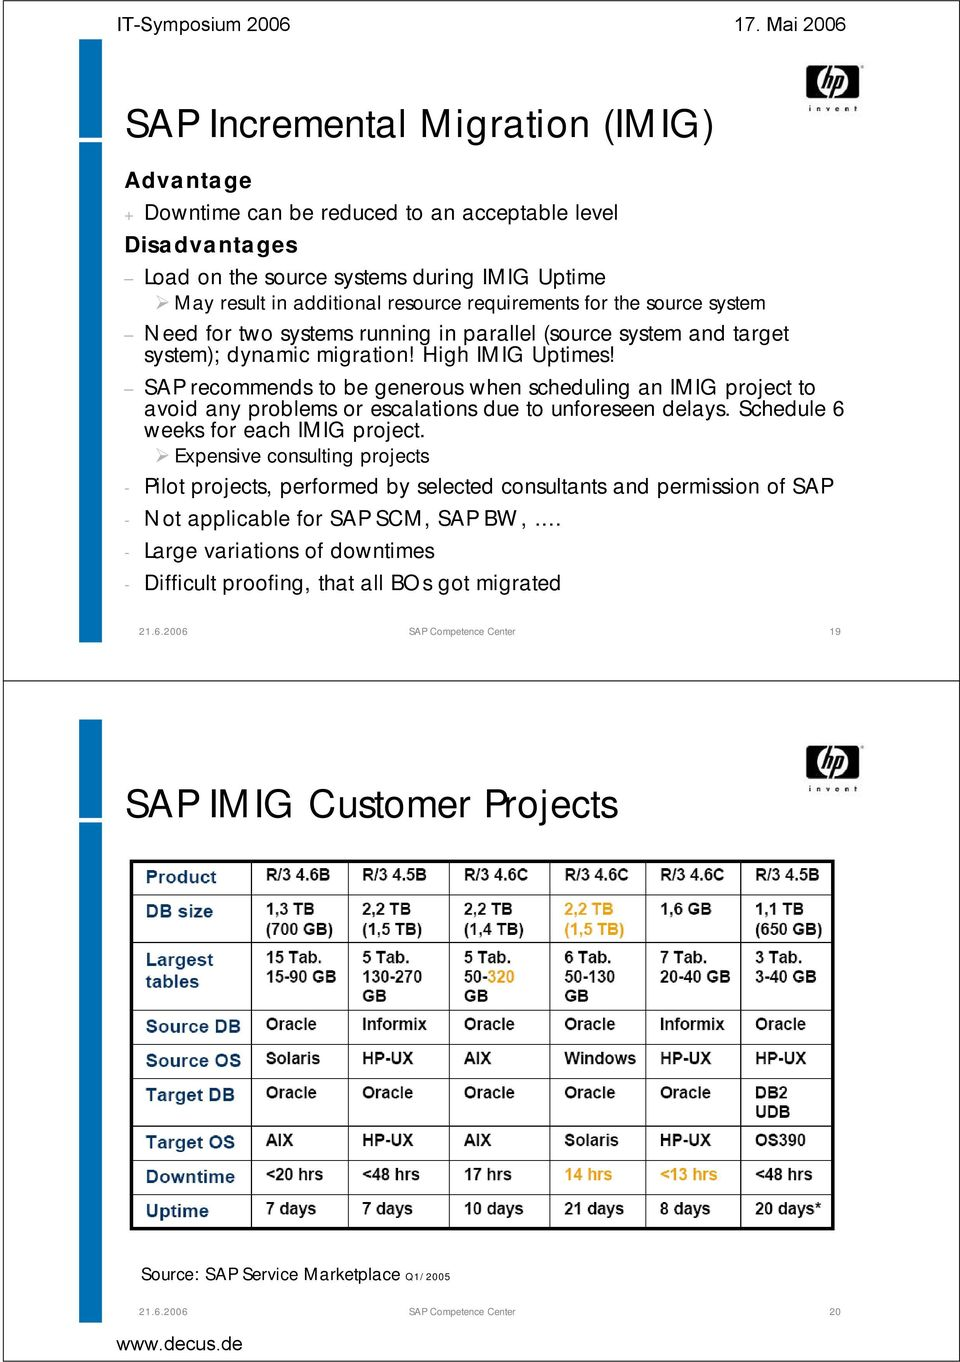 SAP recommends to be generous when scheduling an IMIG project to avoid any problems or escalations due to unforeseen delays. Schedule 6 weeks for each IMIG project.